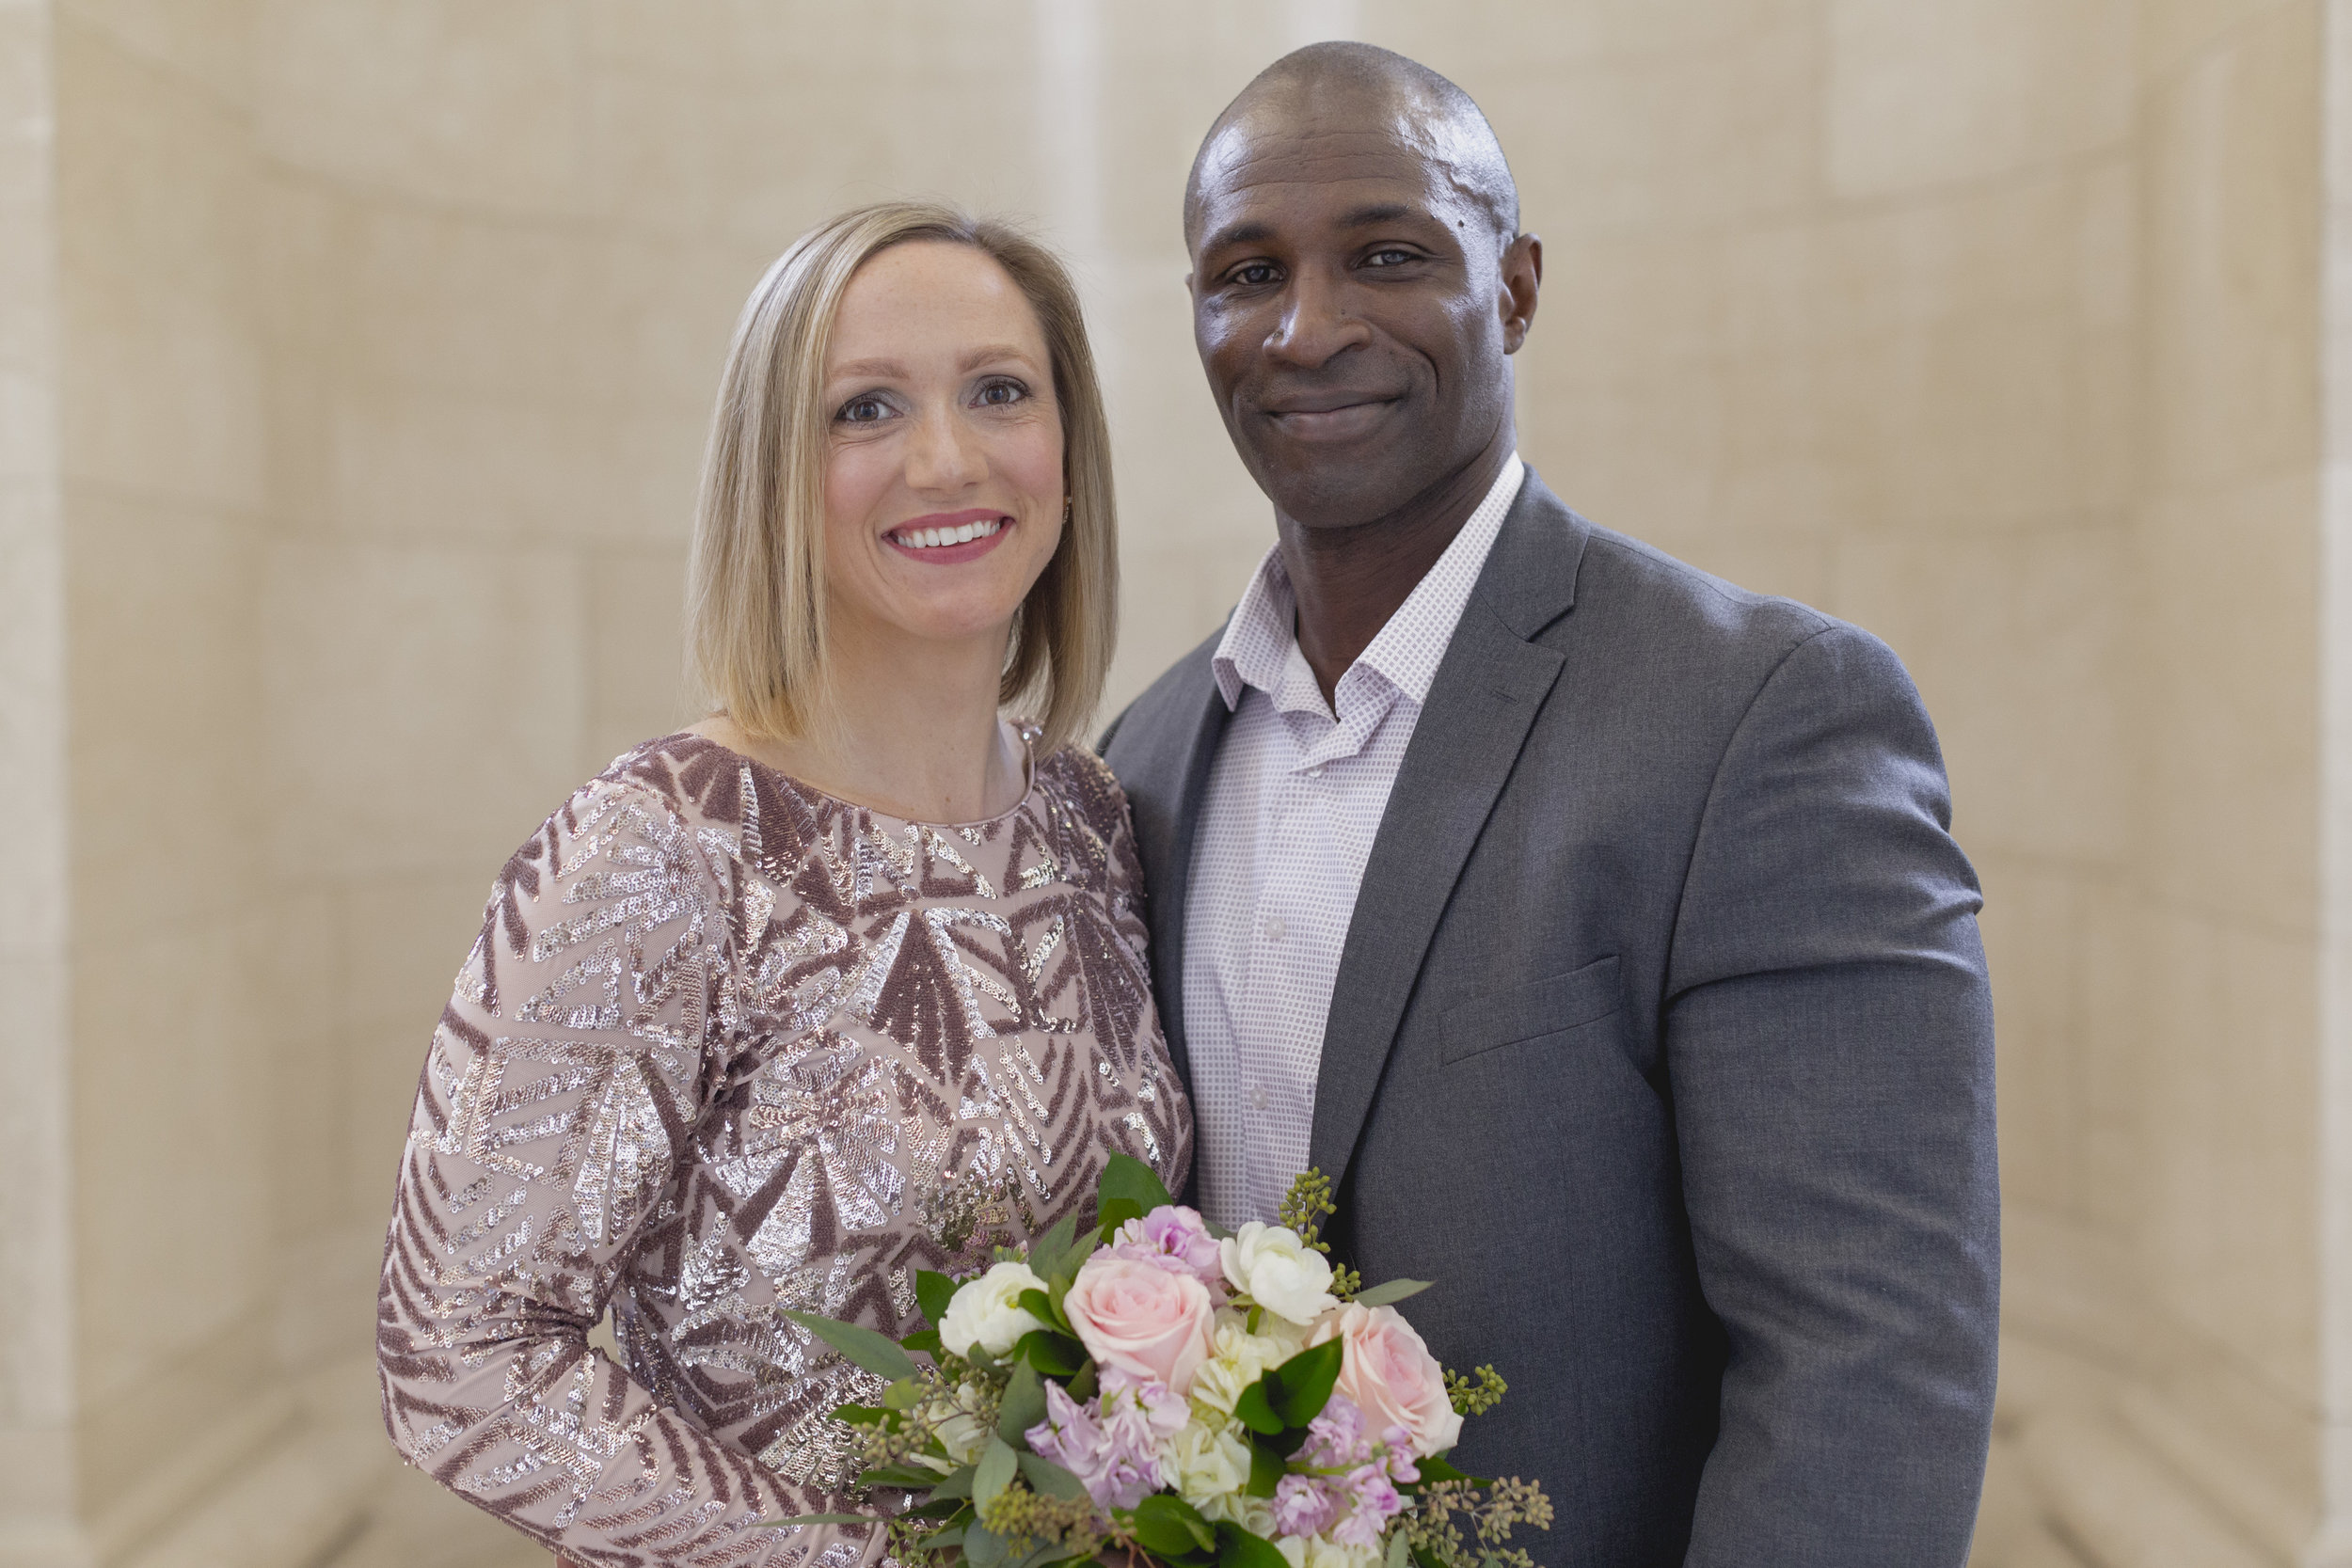 Harry and Deahdra's Wedding at the Milwaukee County Courthouse in Milwaukee, Wisconsin